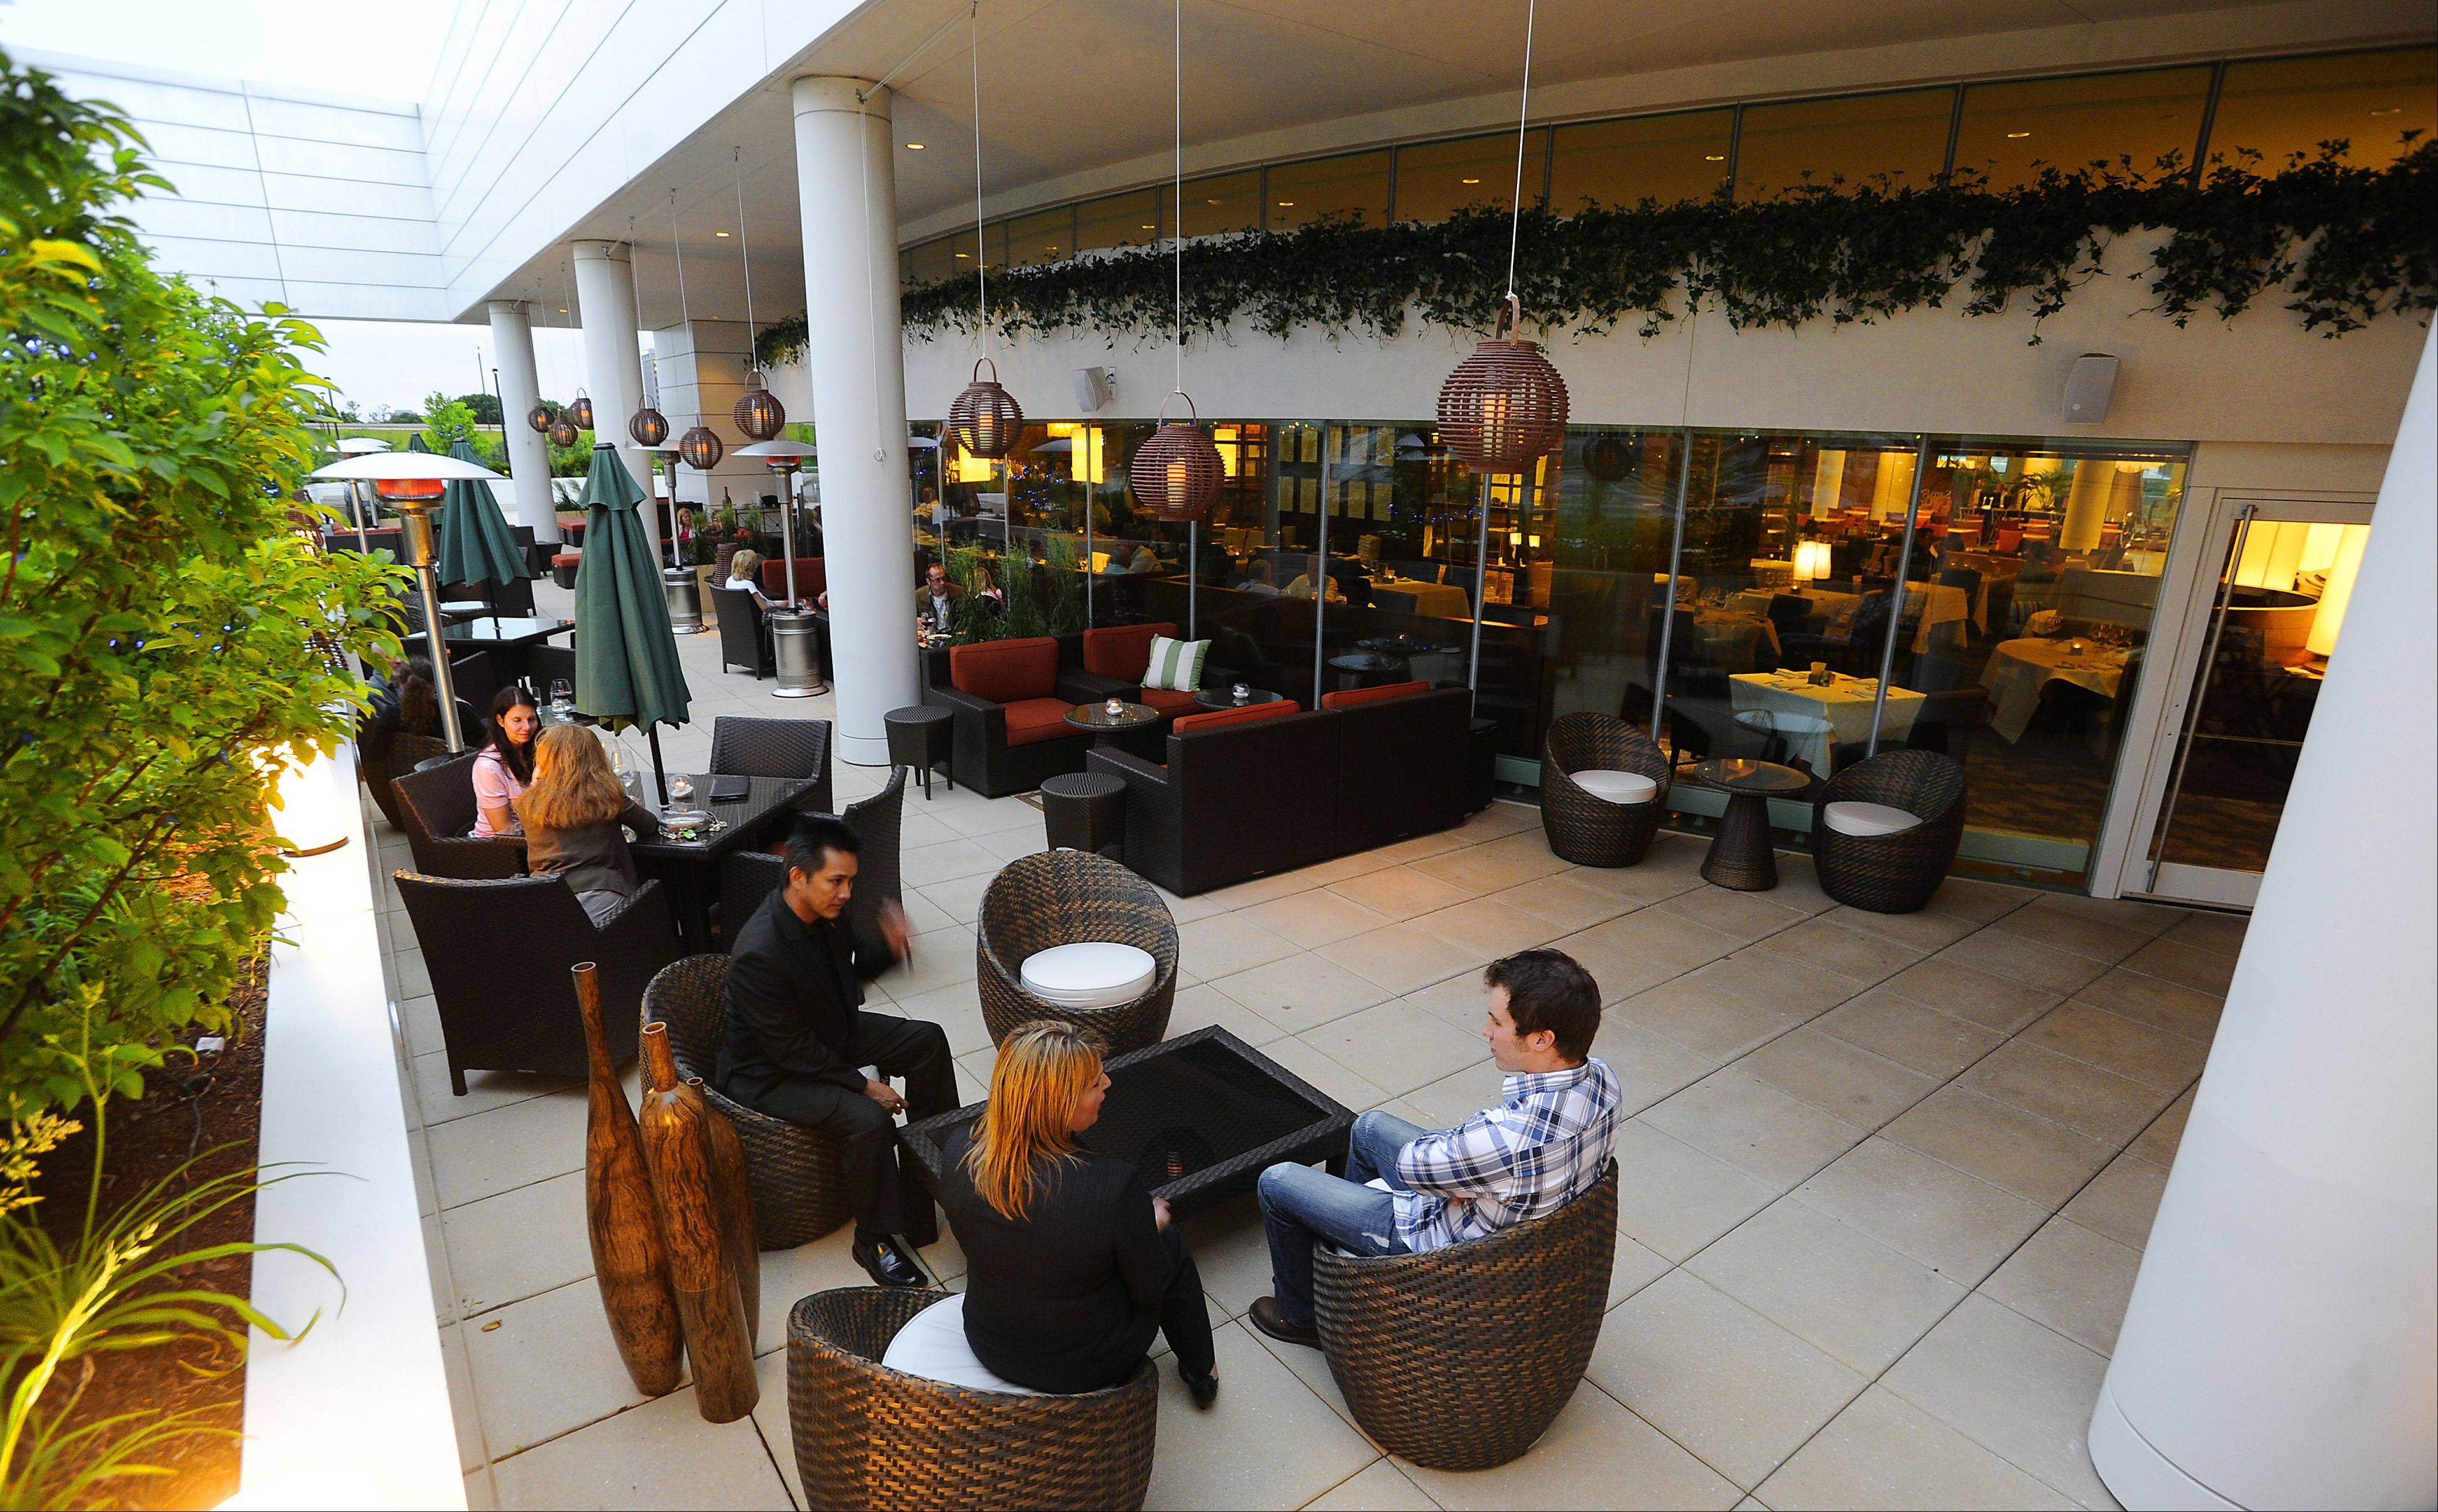 The Terrace Lounge is a nice warm-weather drinks-and-dining option at the Renaissance Schaumburg Convention Center.